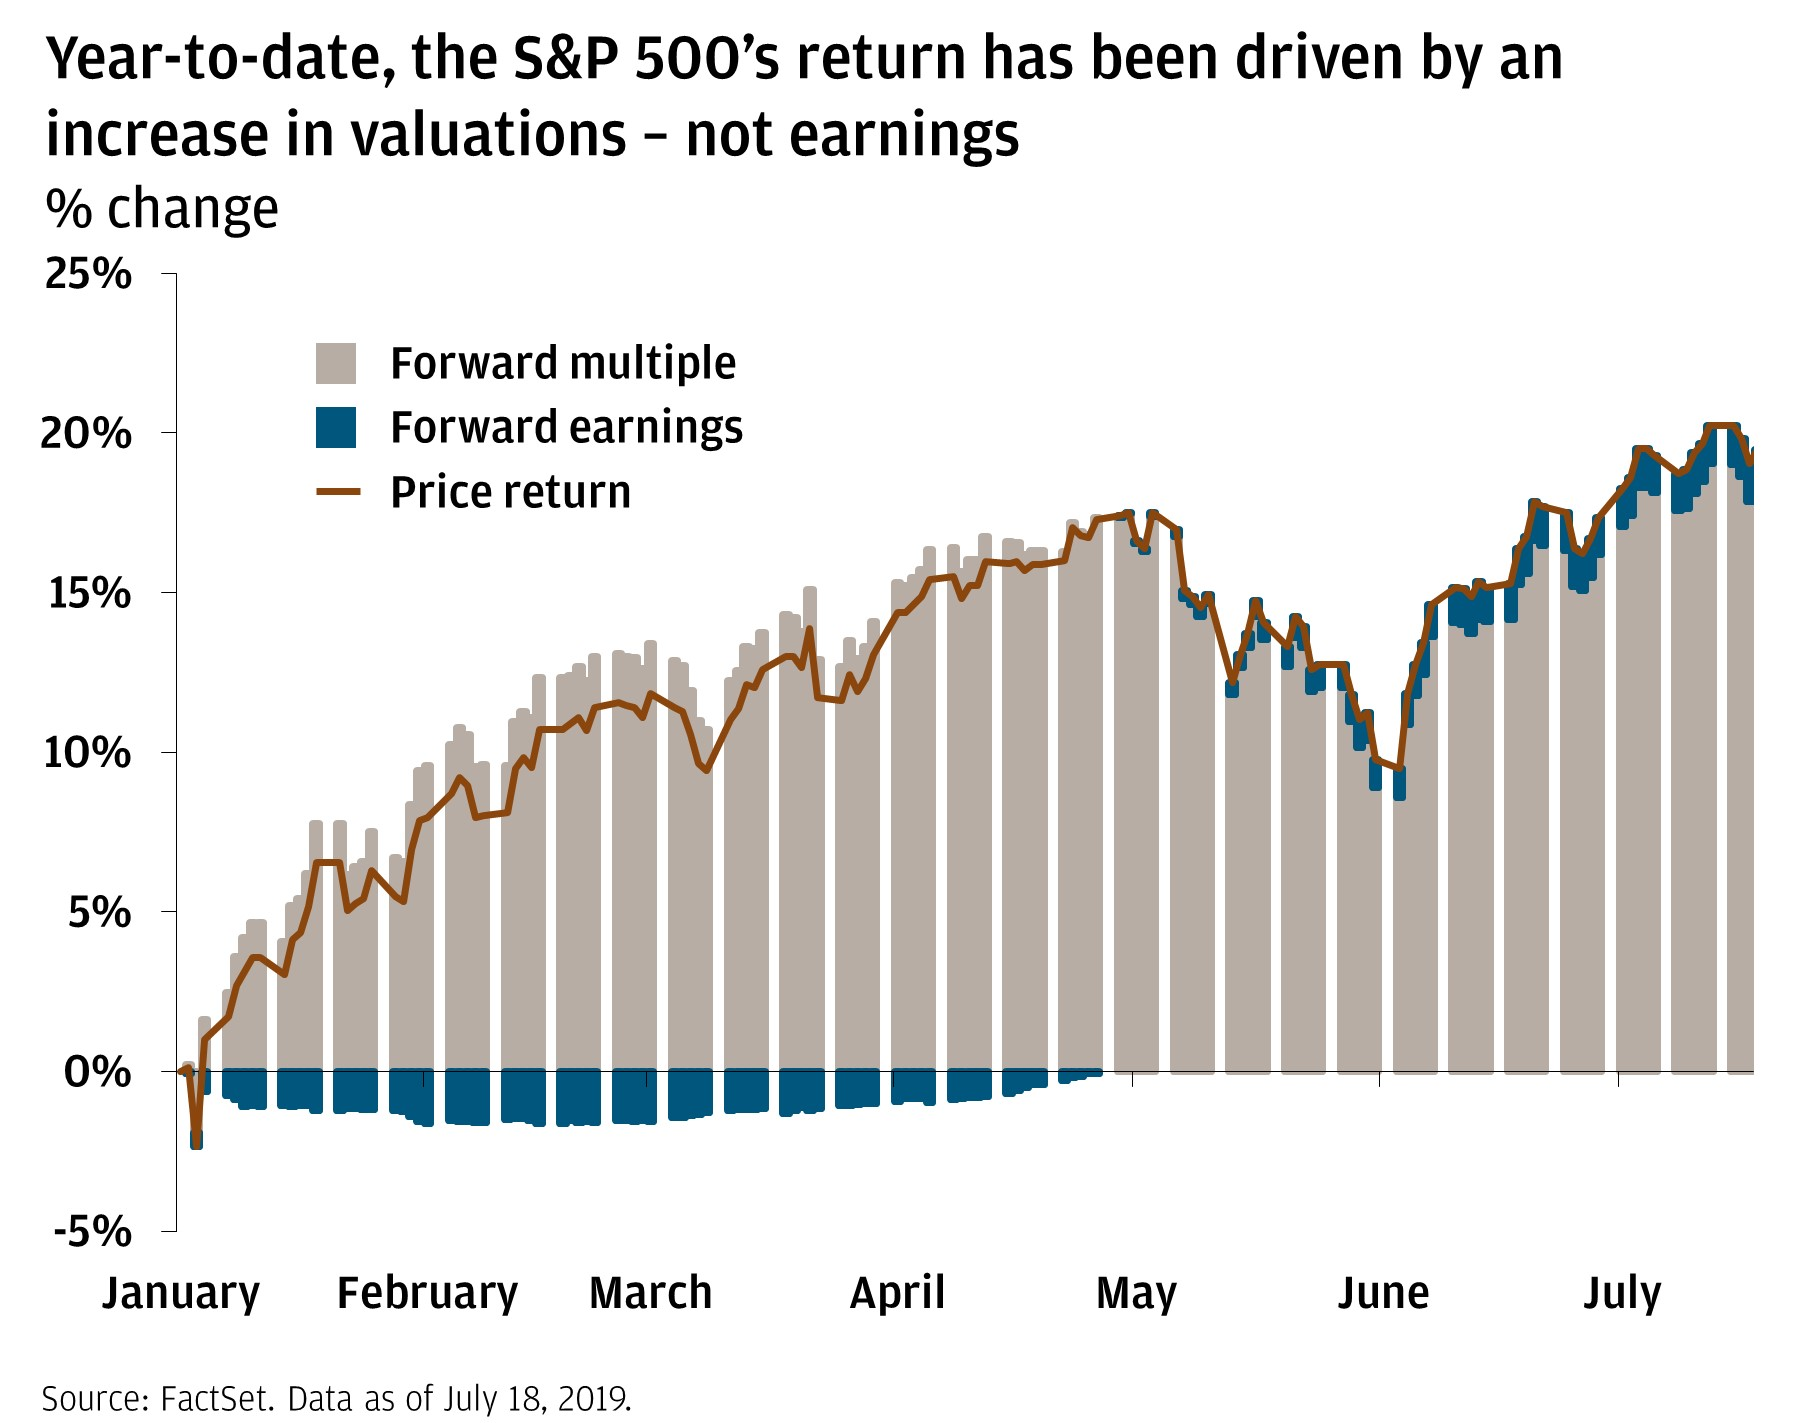 Year-to-date, the S&P 500's return has been driven by an increase in valuations—not earnings Stacked area chart highlighting the sources of the S&P 500's return since January 2019. Forward multiples (valuations) rather than earnings increases have helped drive price return of the S&P 500 in 2019.